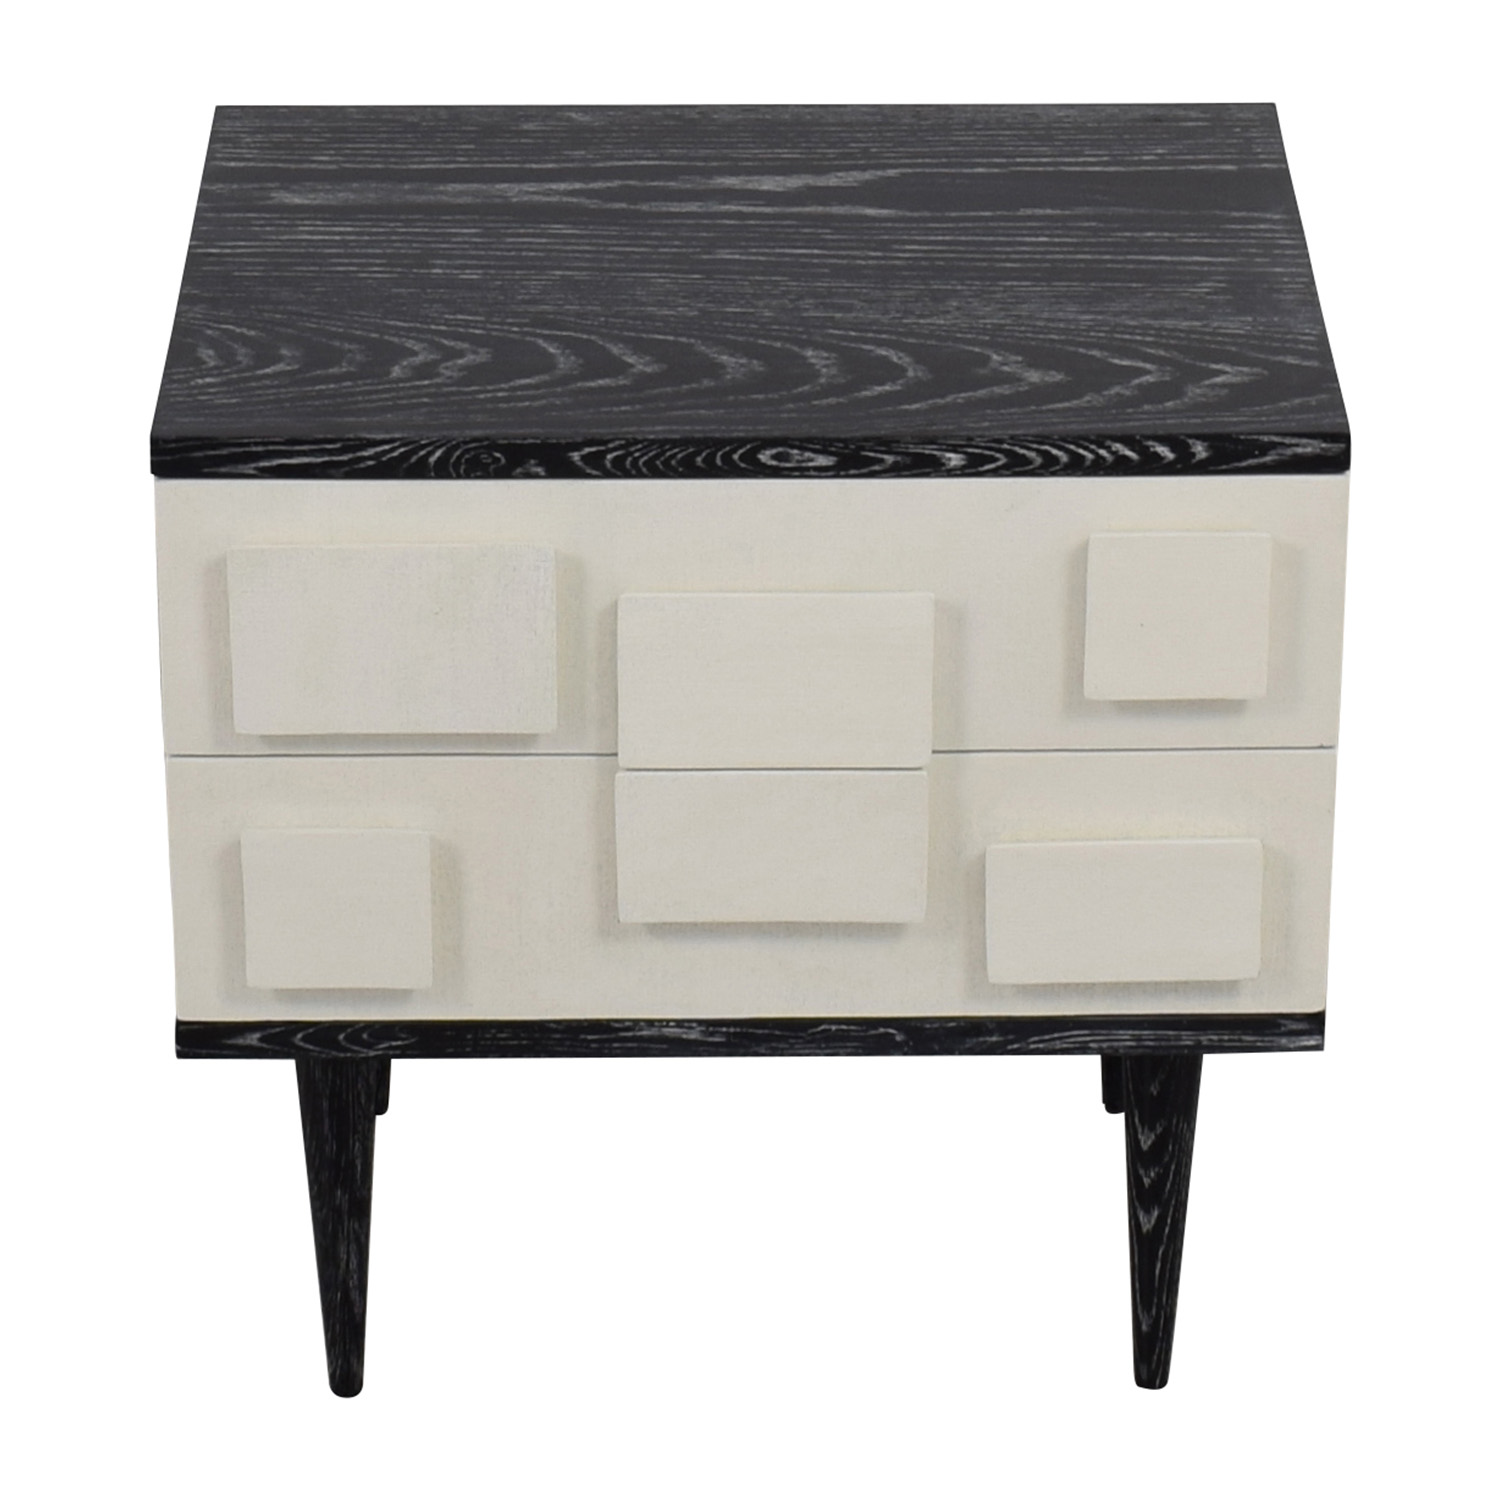 Bungalow 5 Bungalow 5 Ponti Two-Drawer Side Table